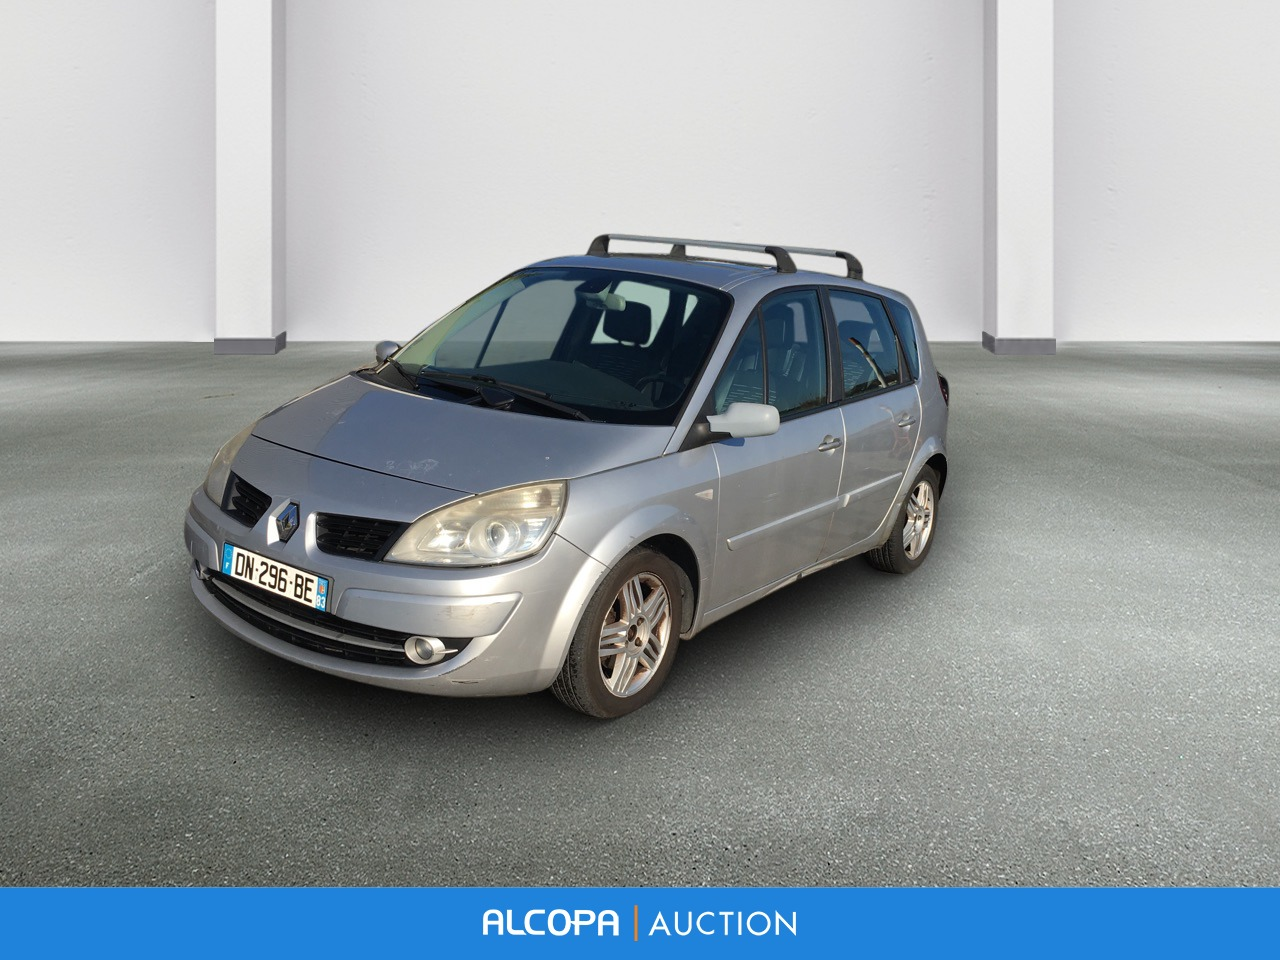 renault scenic ii 07 2006 04 2009 scenic 1 5 dci 105 eco2 exception marseille alcopa auction. Black Bedroom Furniture Sets. Home Design Ideas